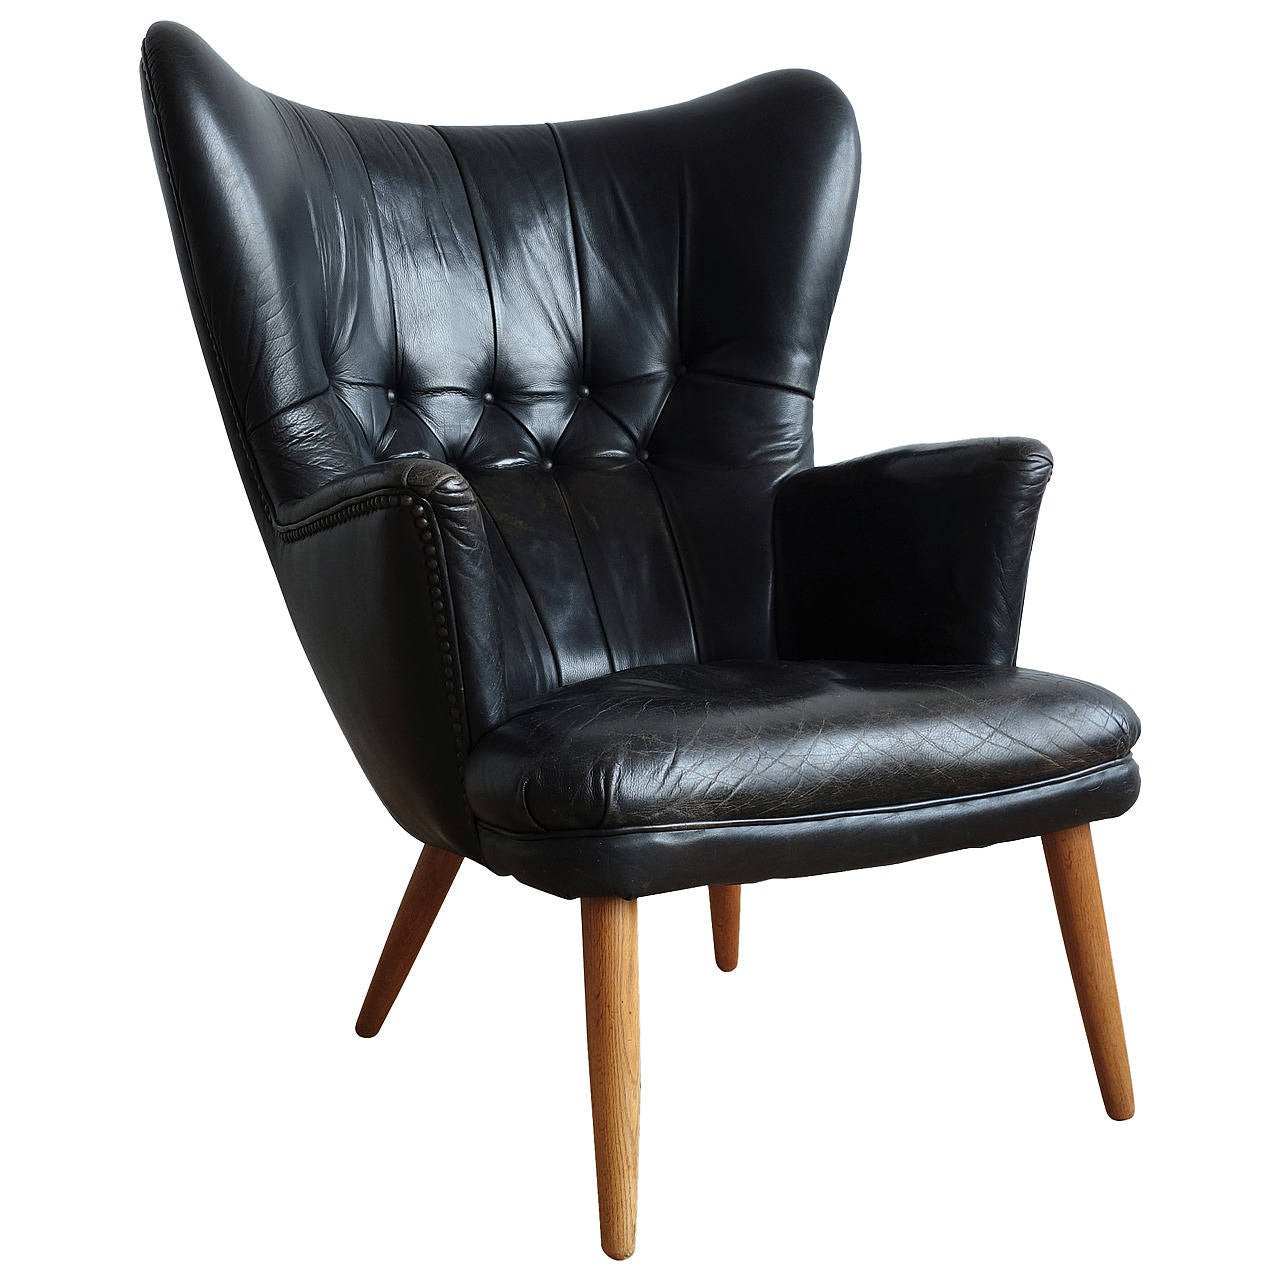 Fantastic Danish Leather Wingback Chair In The Manner Of